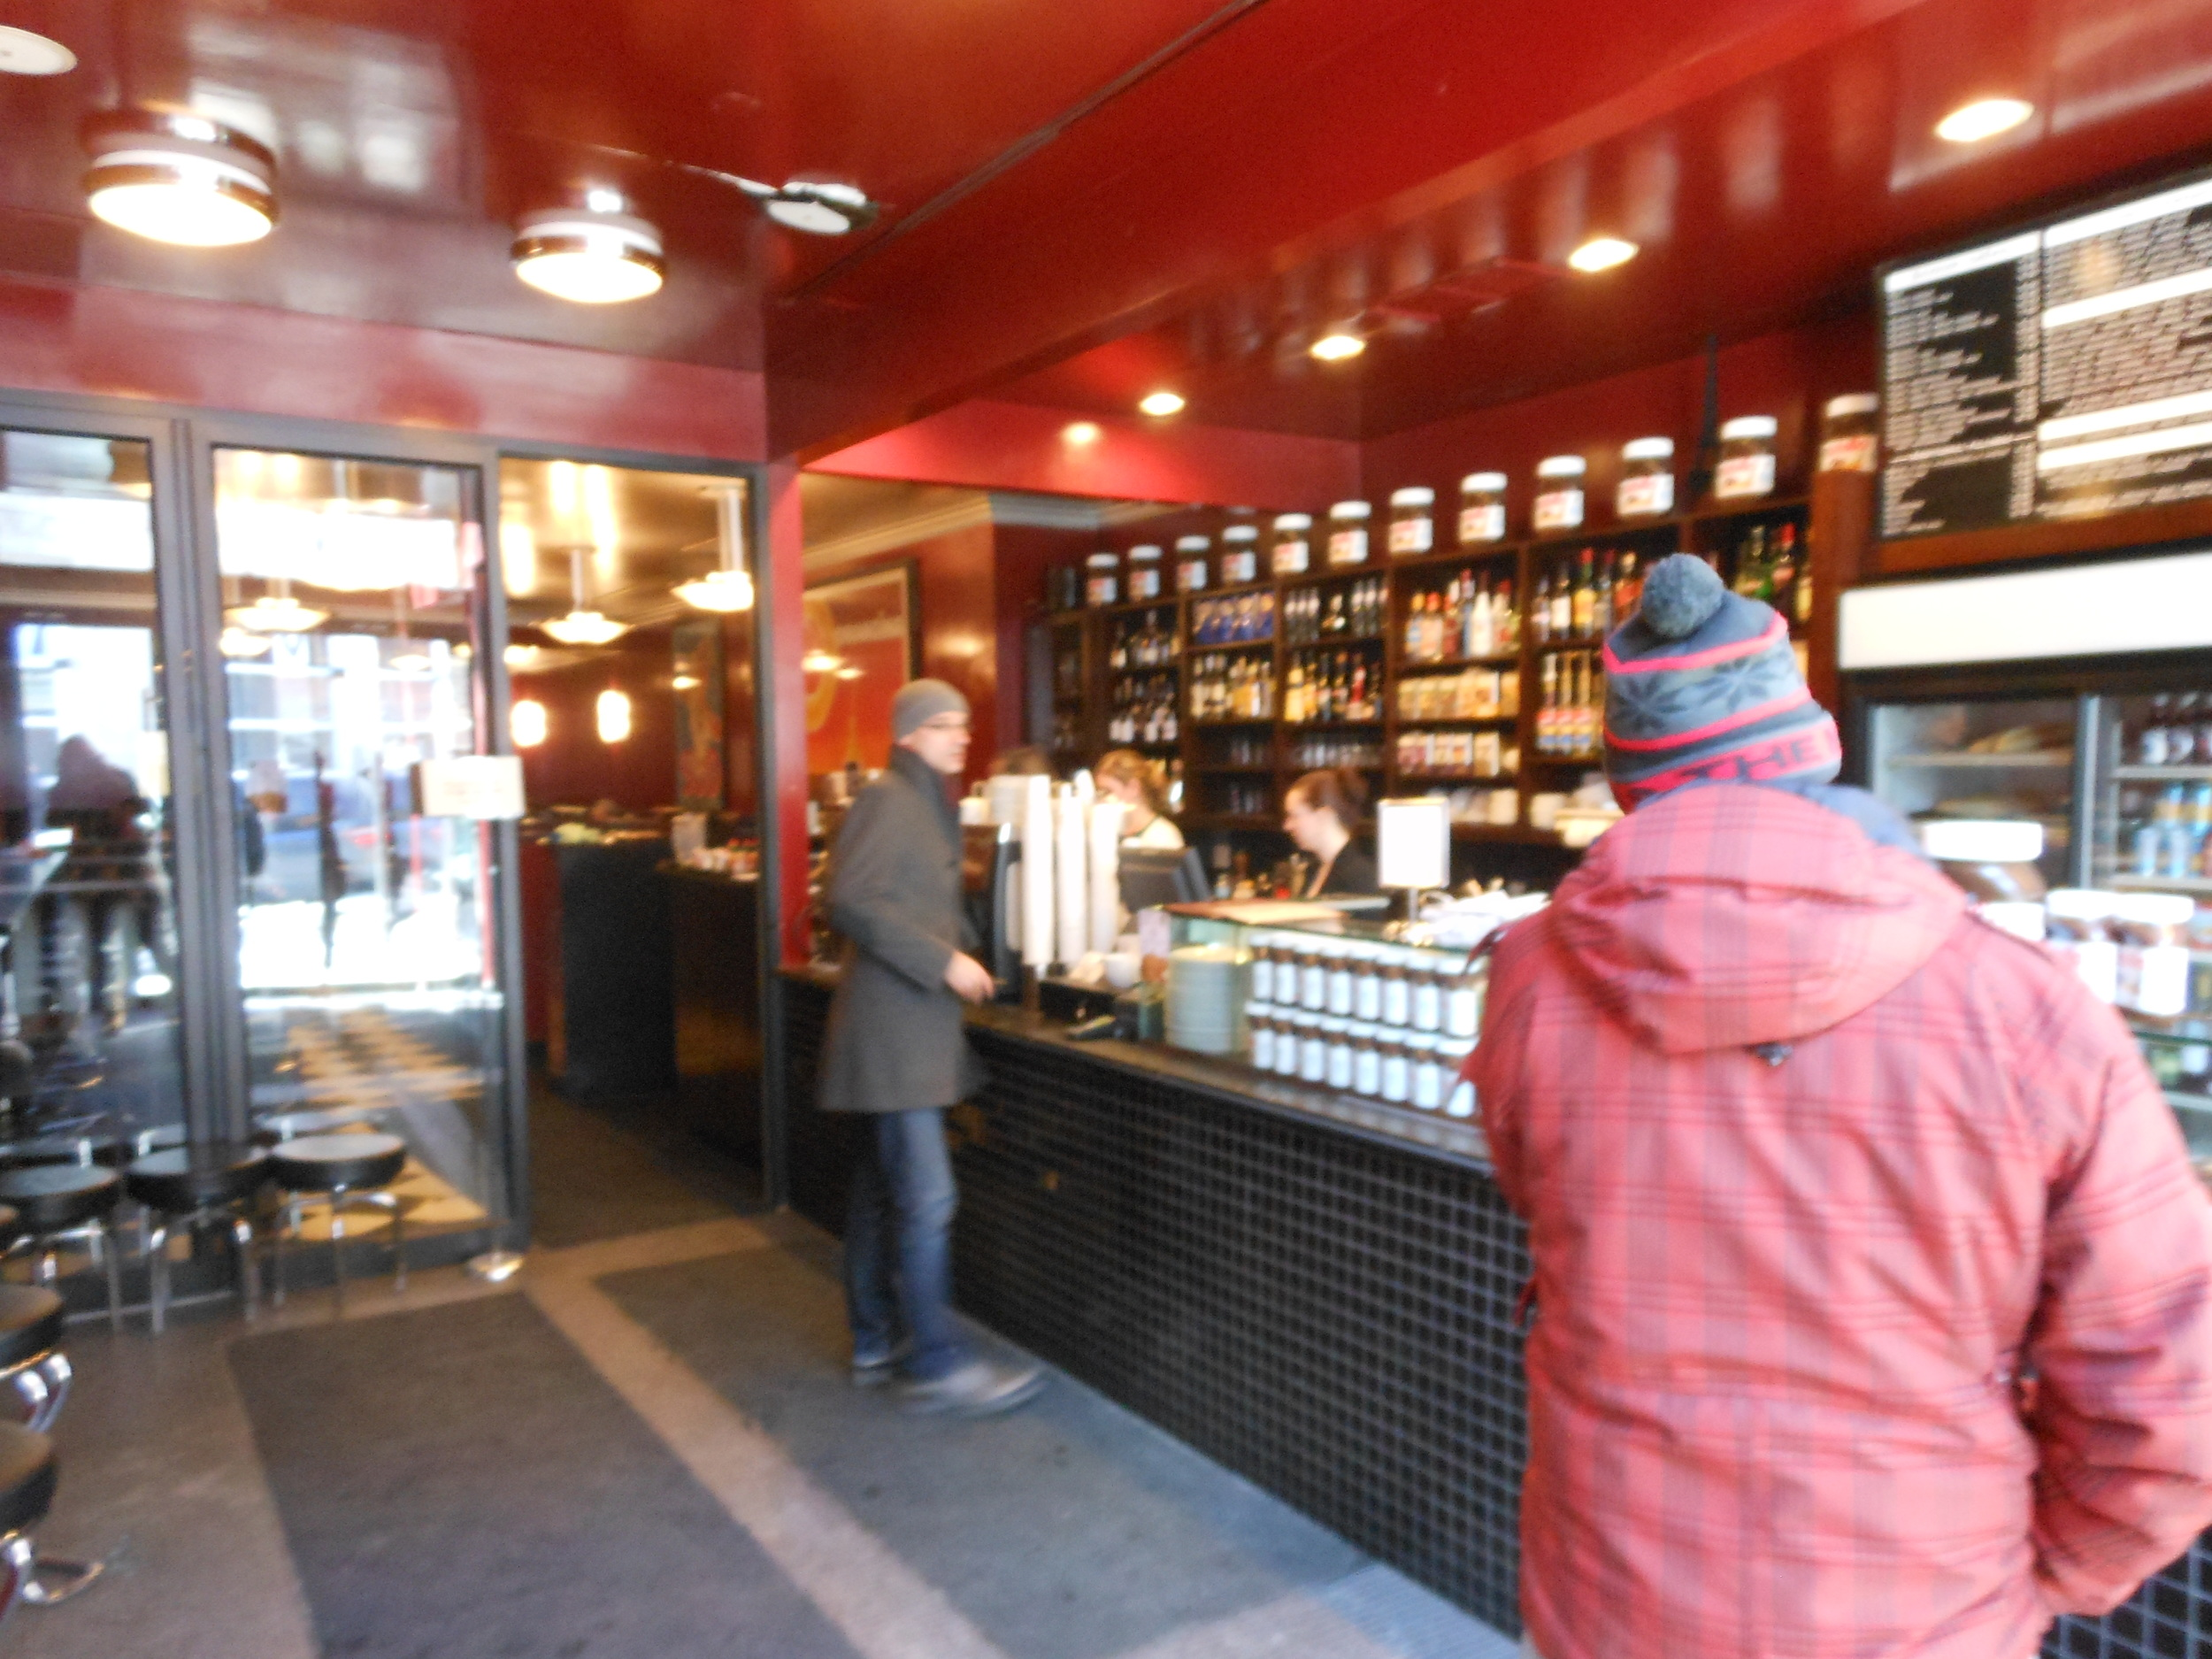 Image of accessible space inside Cafe Crepe.